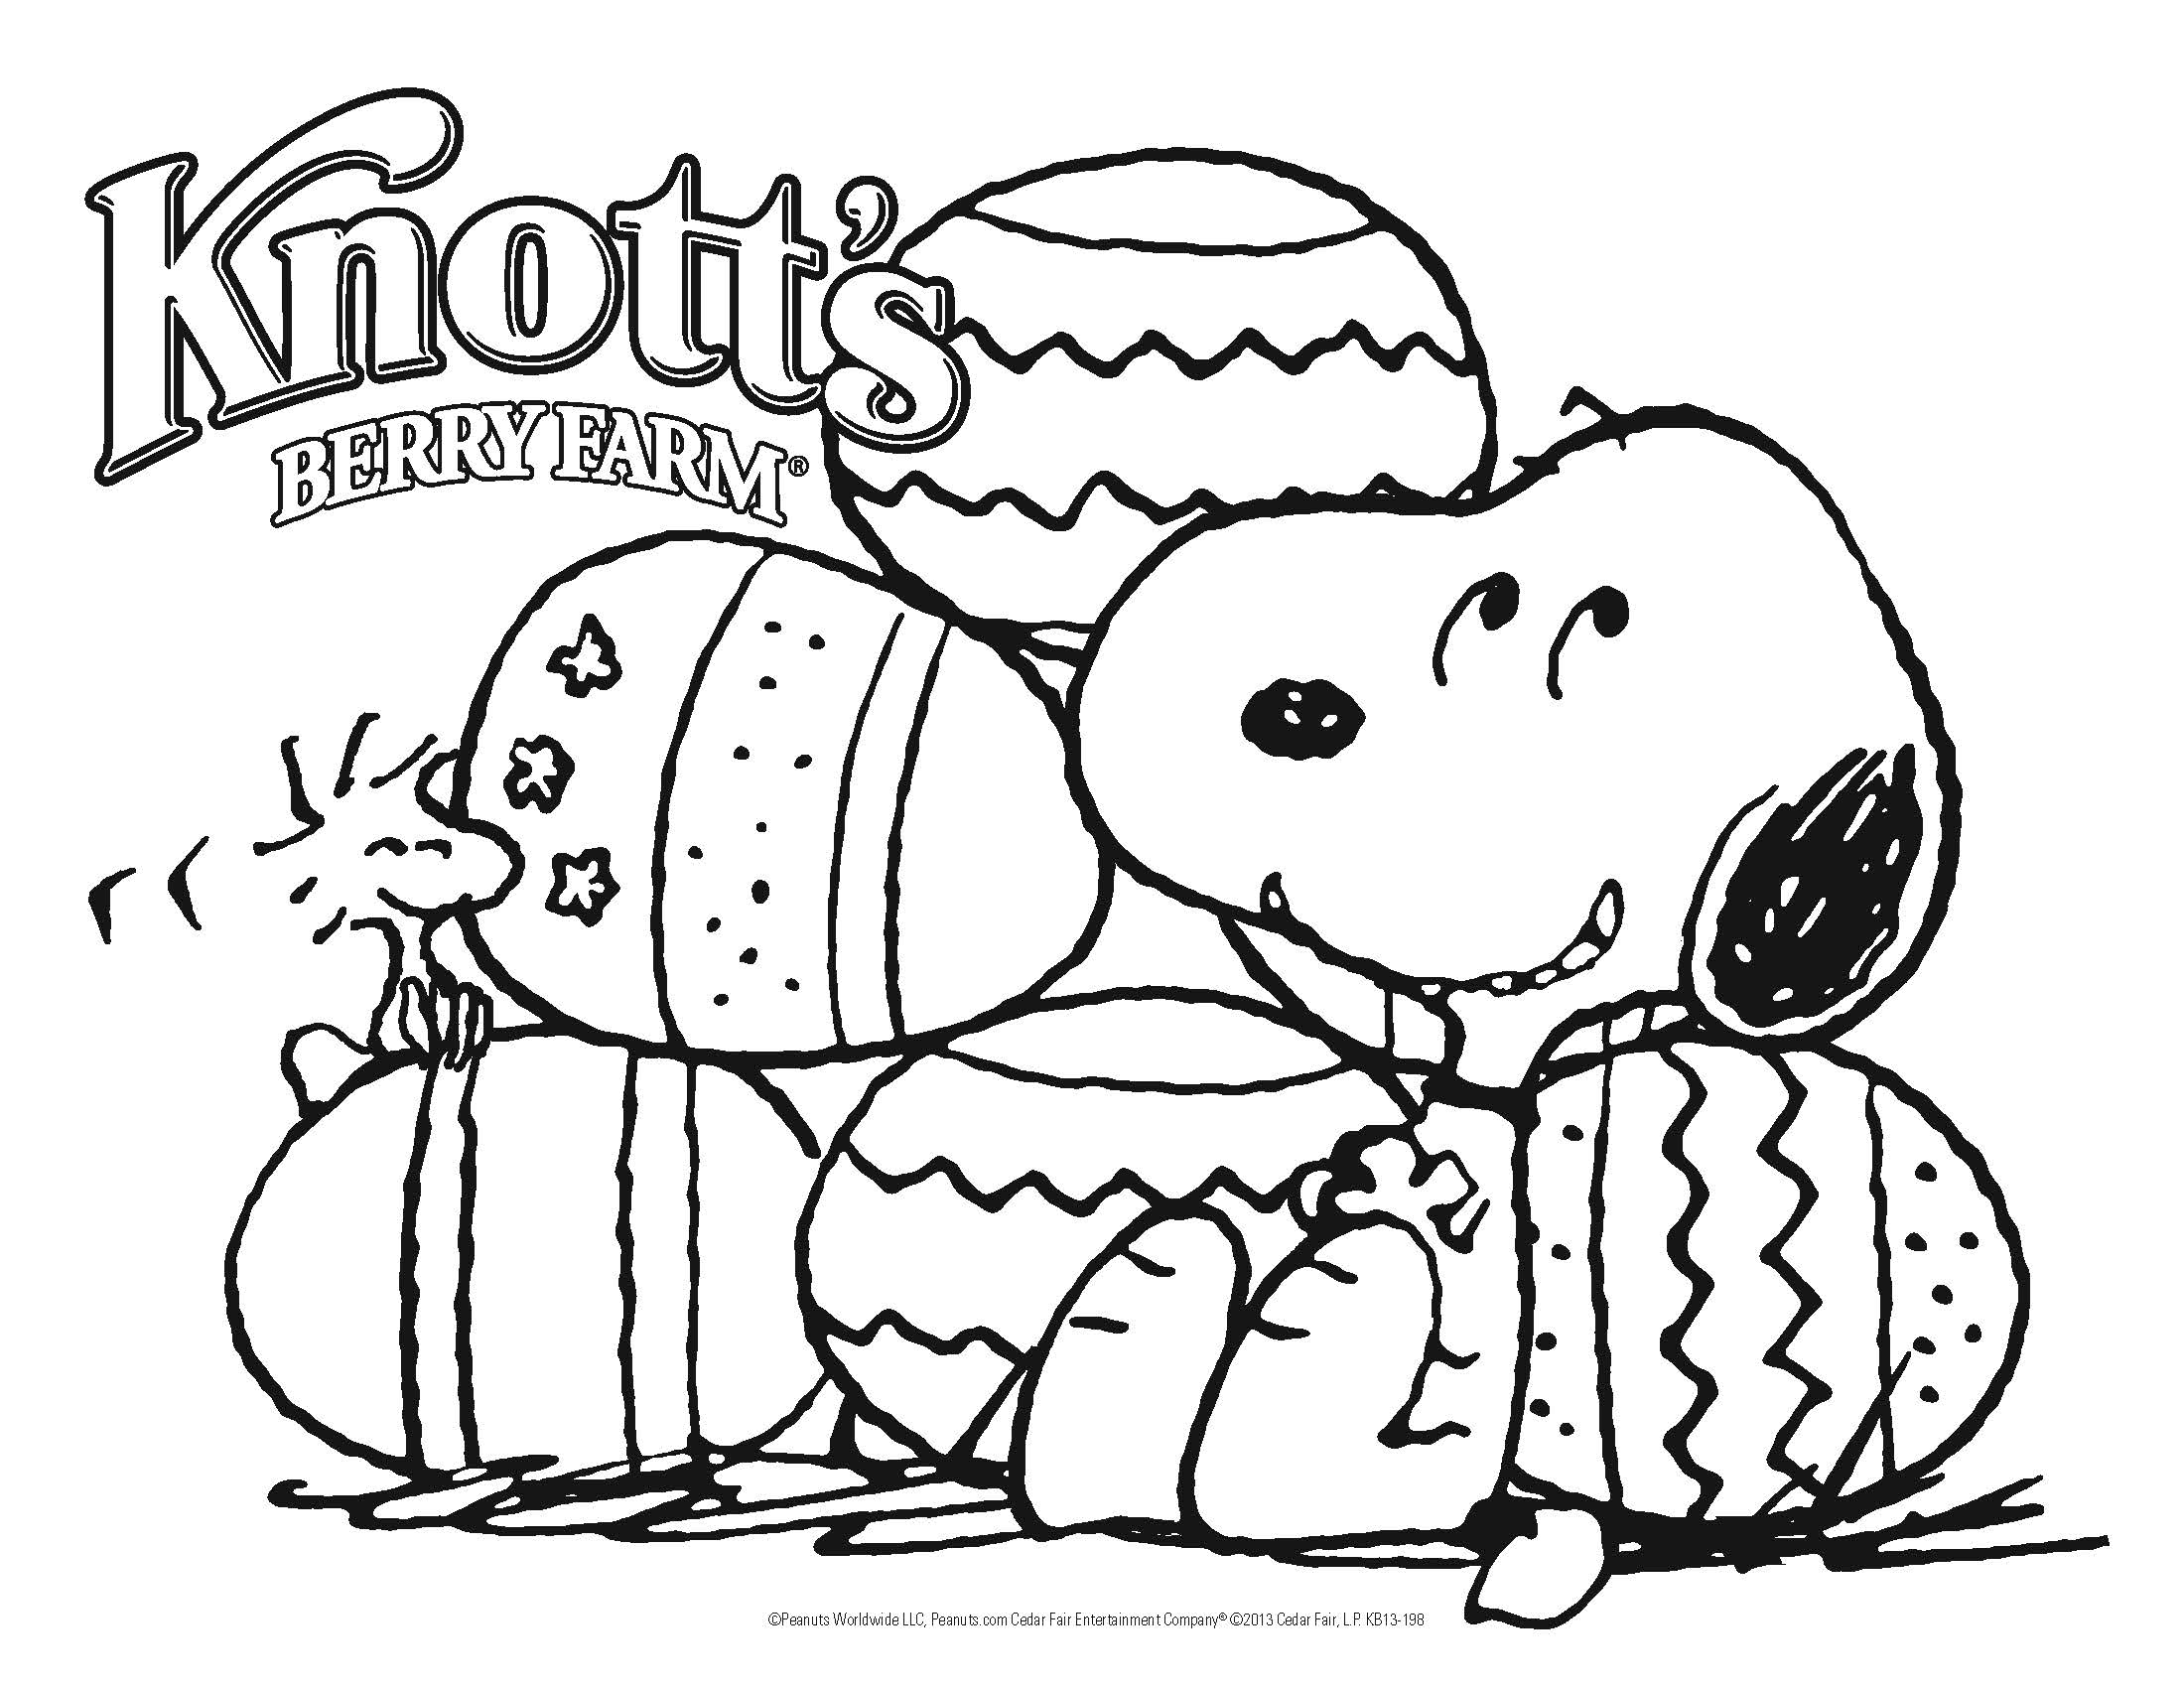 2200x1700 Halloween Snoopy Coloring Page Free Printable Pages Cartoons